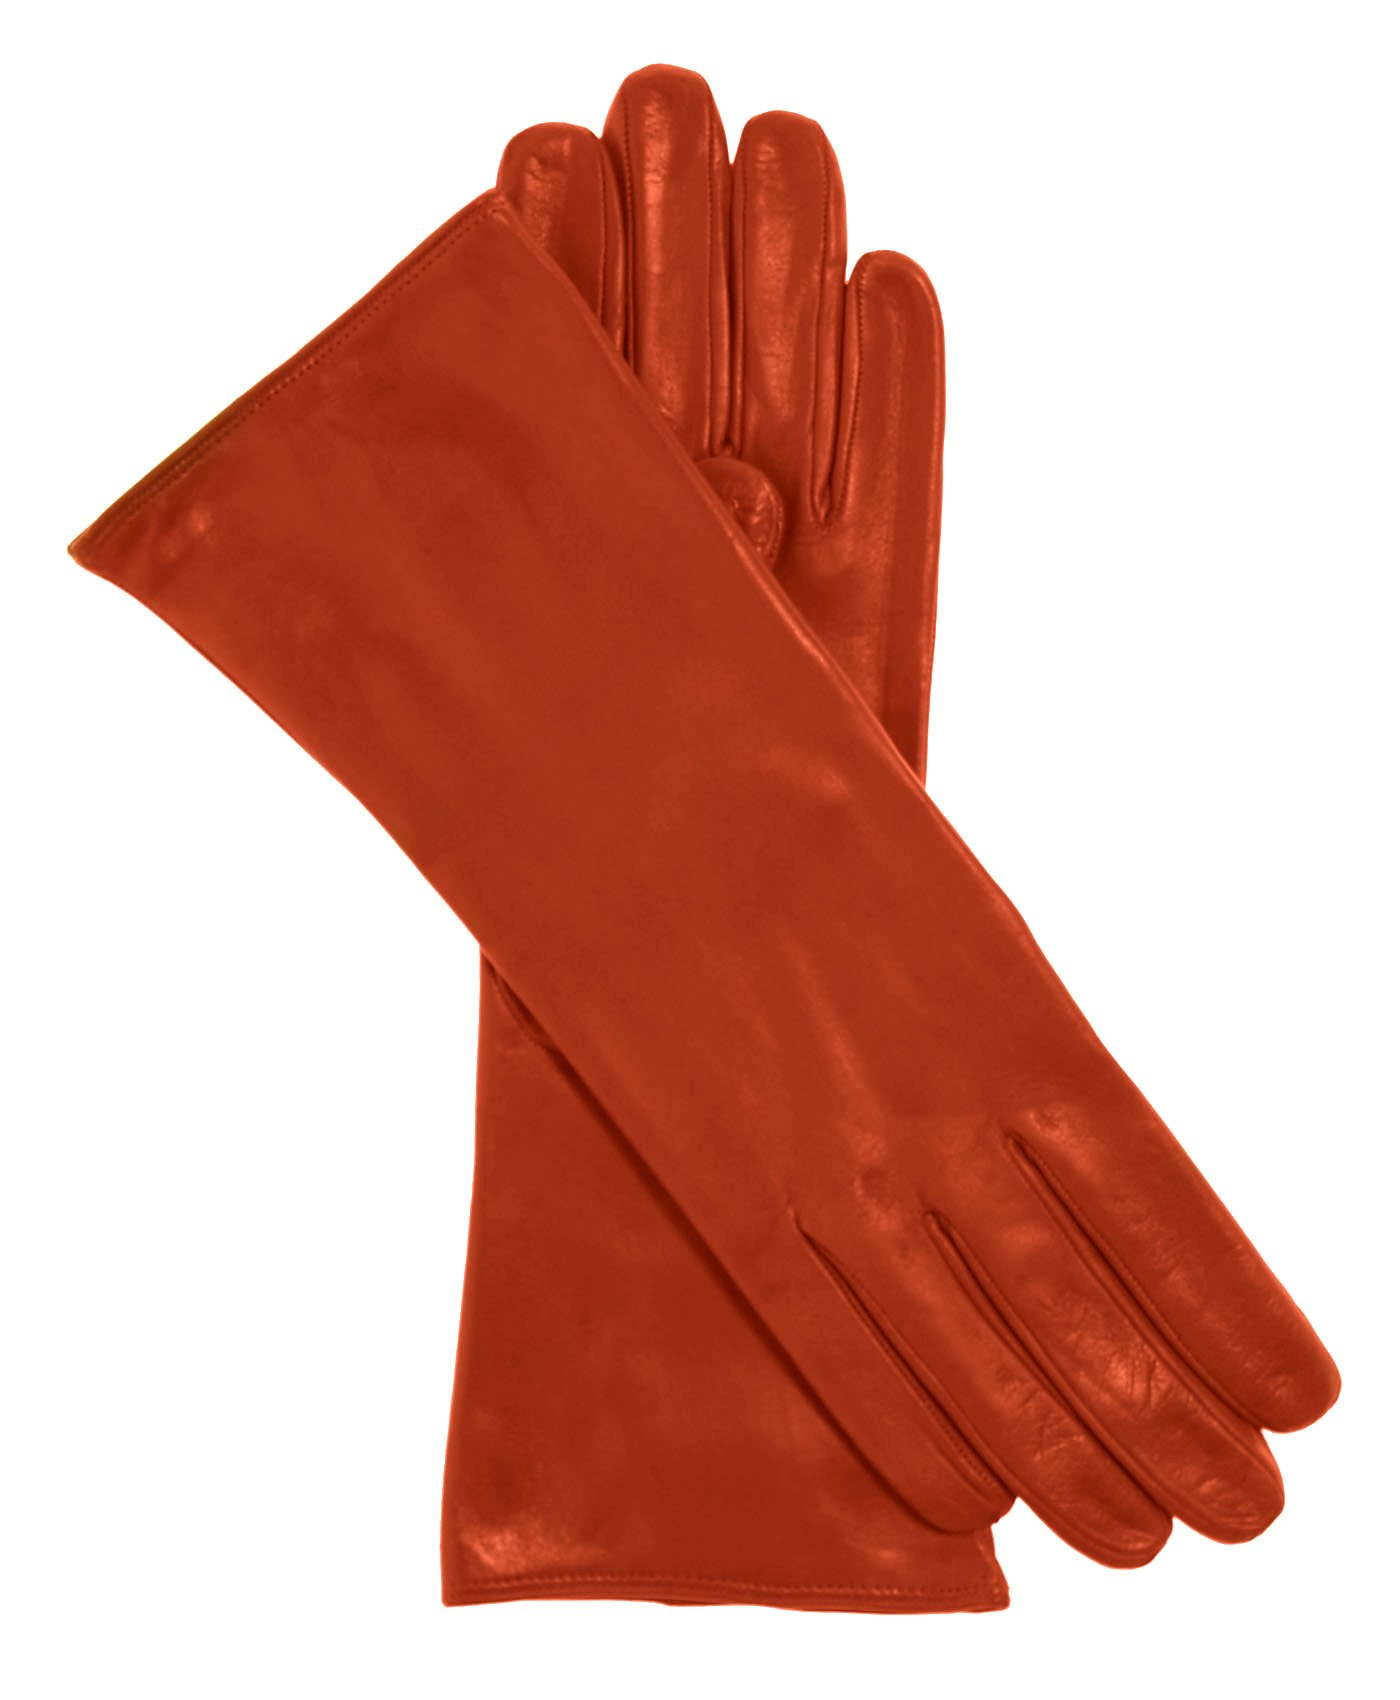 Fratelli Orsini Women's Italian ''4 Button Length'' Cashmere Lined Leather Gloves Size 7 1/2 Color Pumpkin by Fratelli Orsini